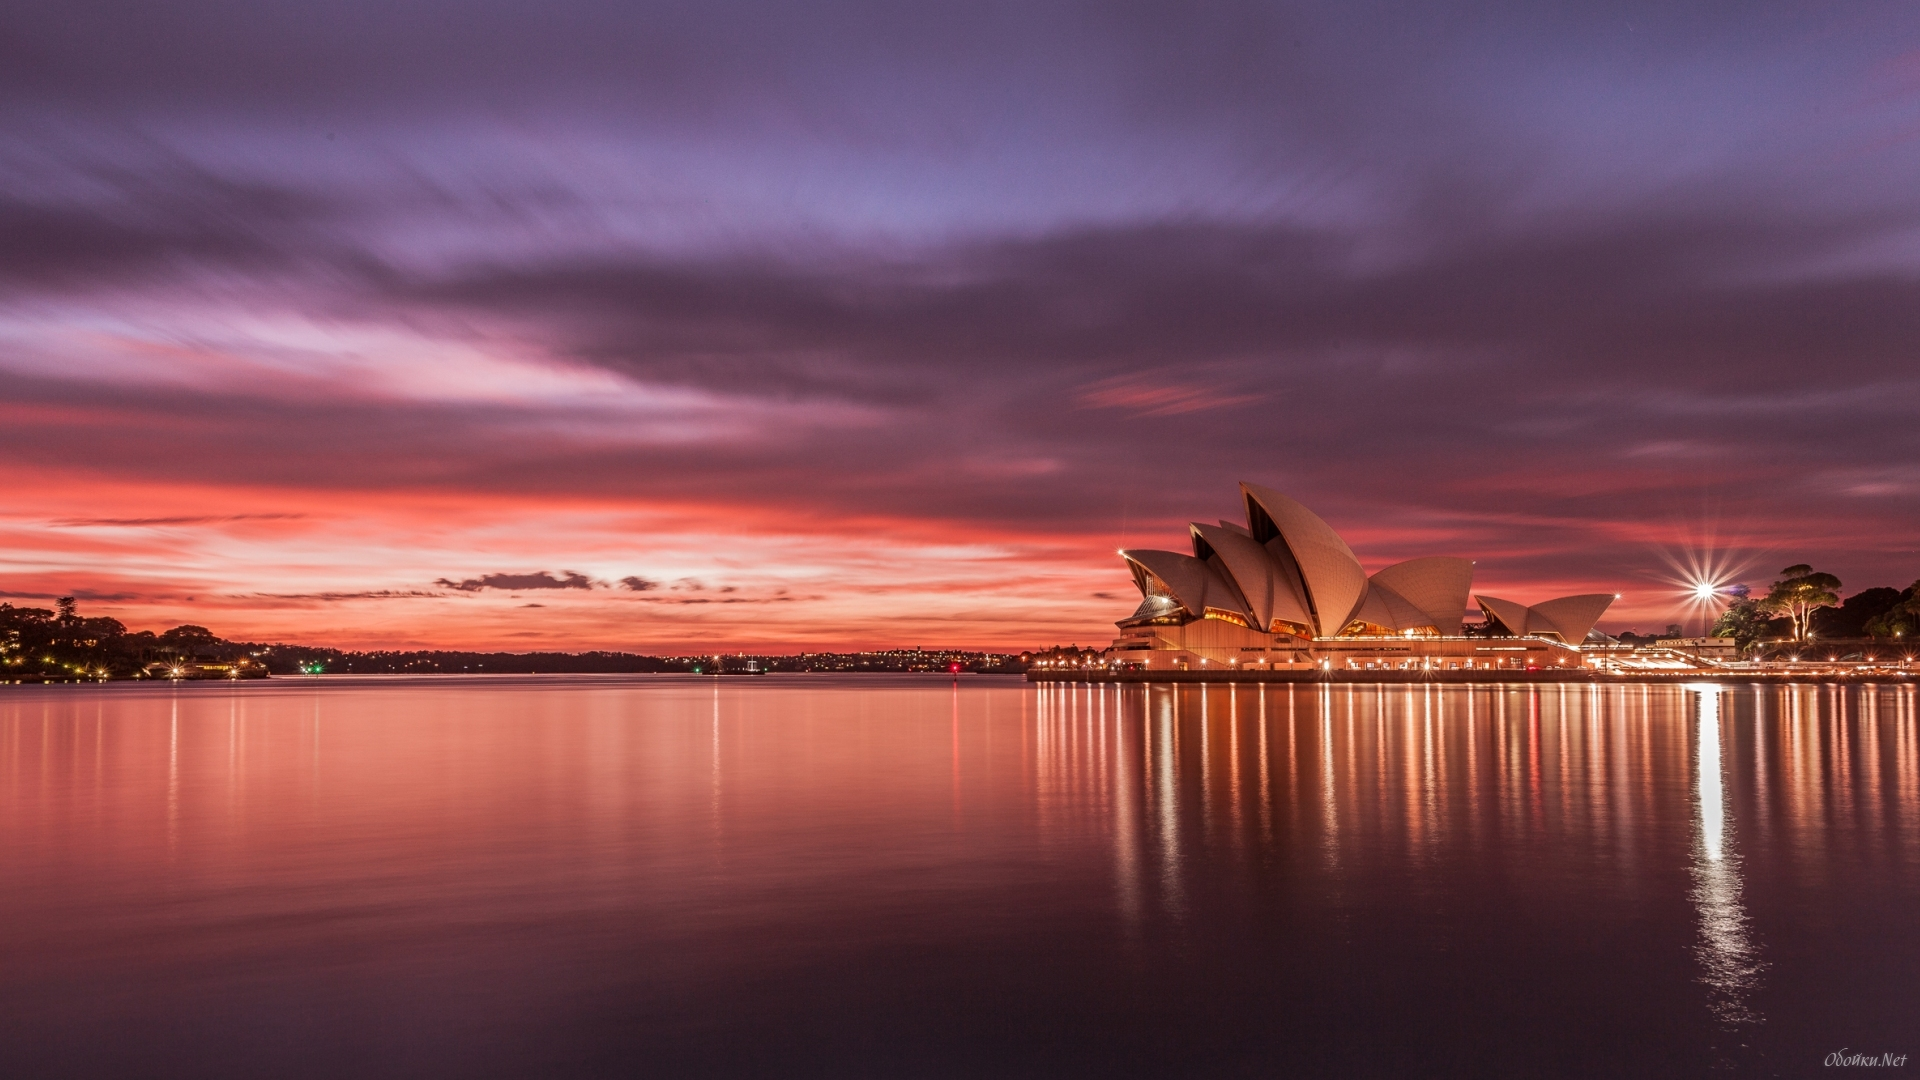 australia sydney hd desktop wallpaper hd desktop wallpaper